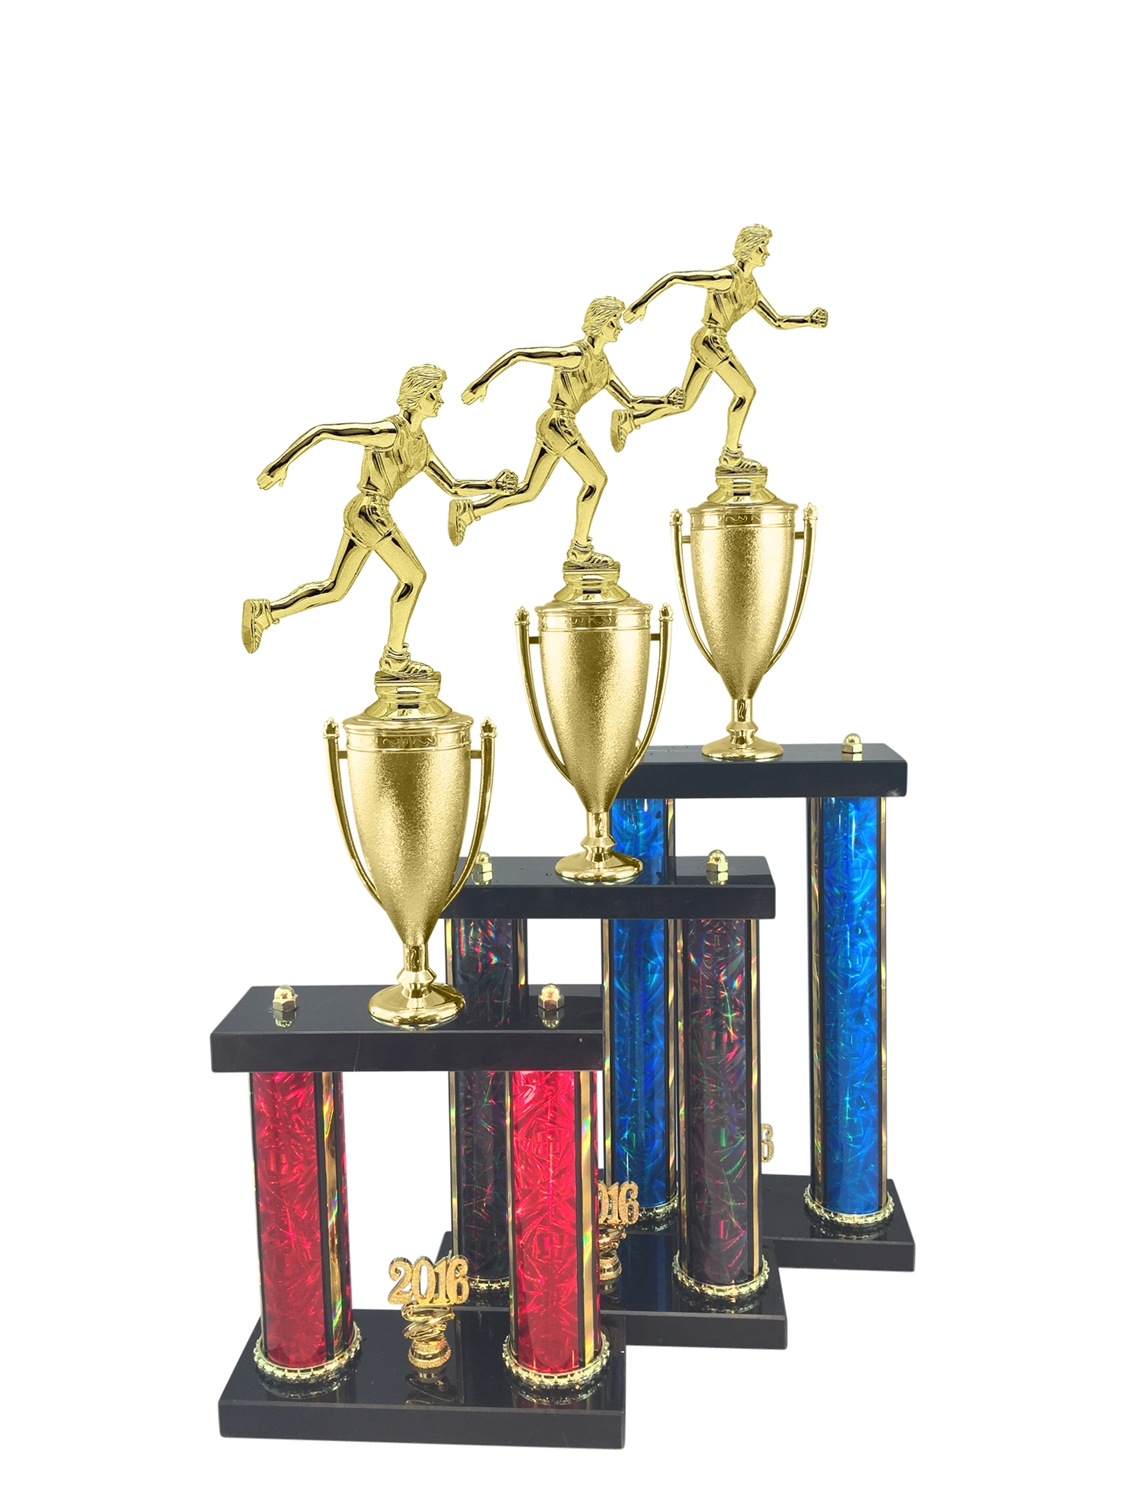 Female Cross Country Trophy Available in 11 Color & 3 Size Options